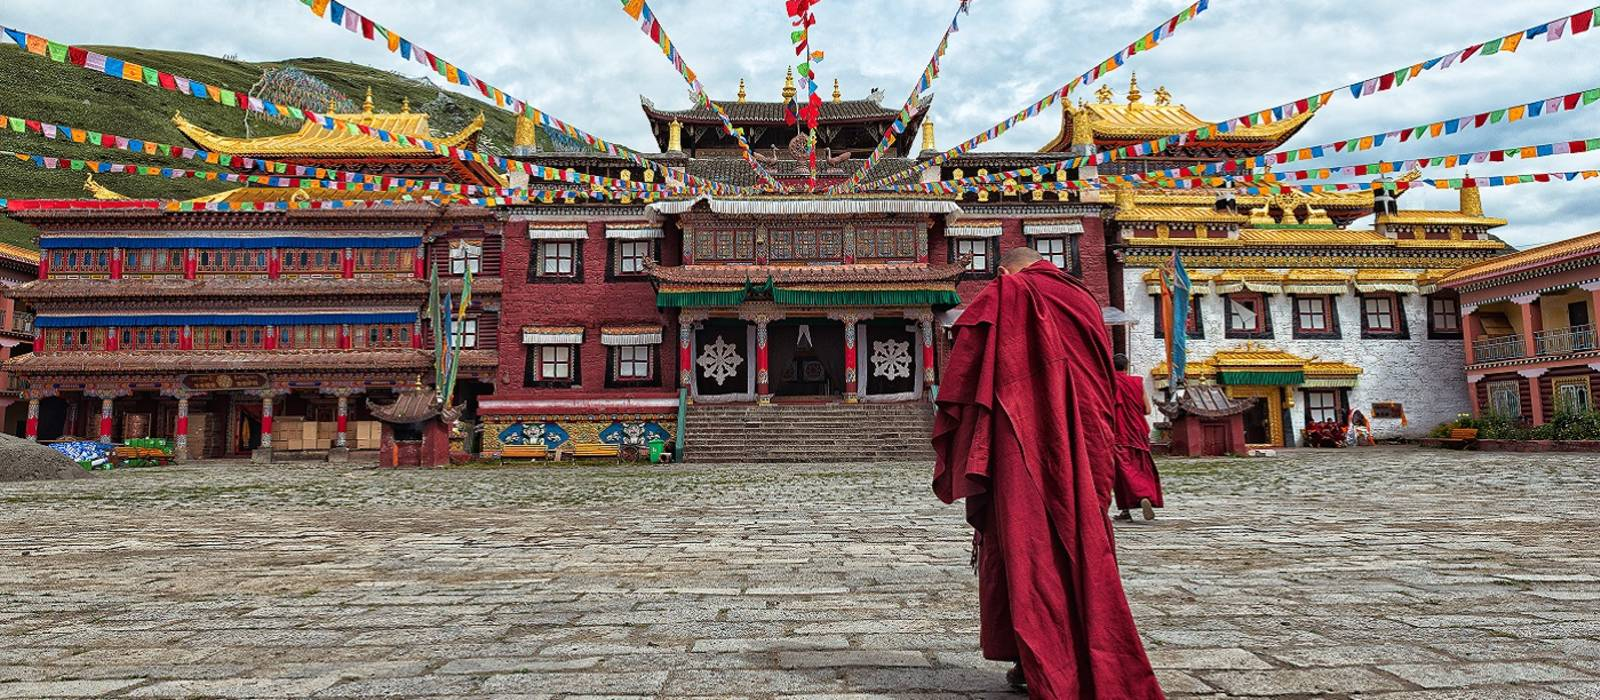 Lama Tours And Travels